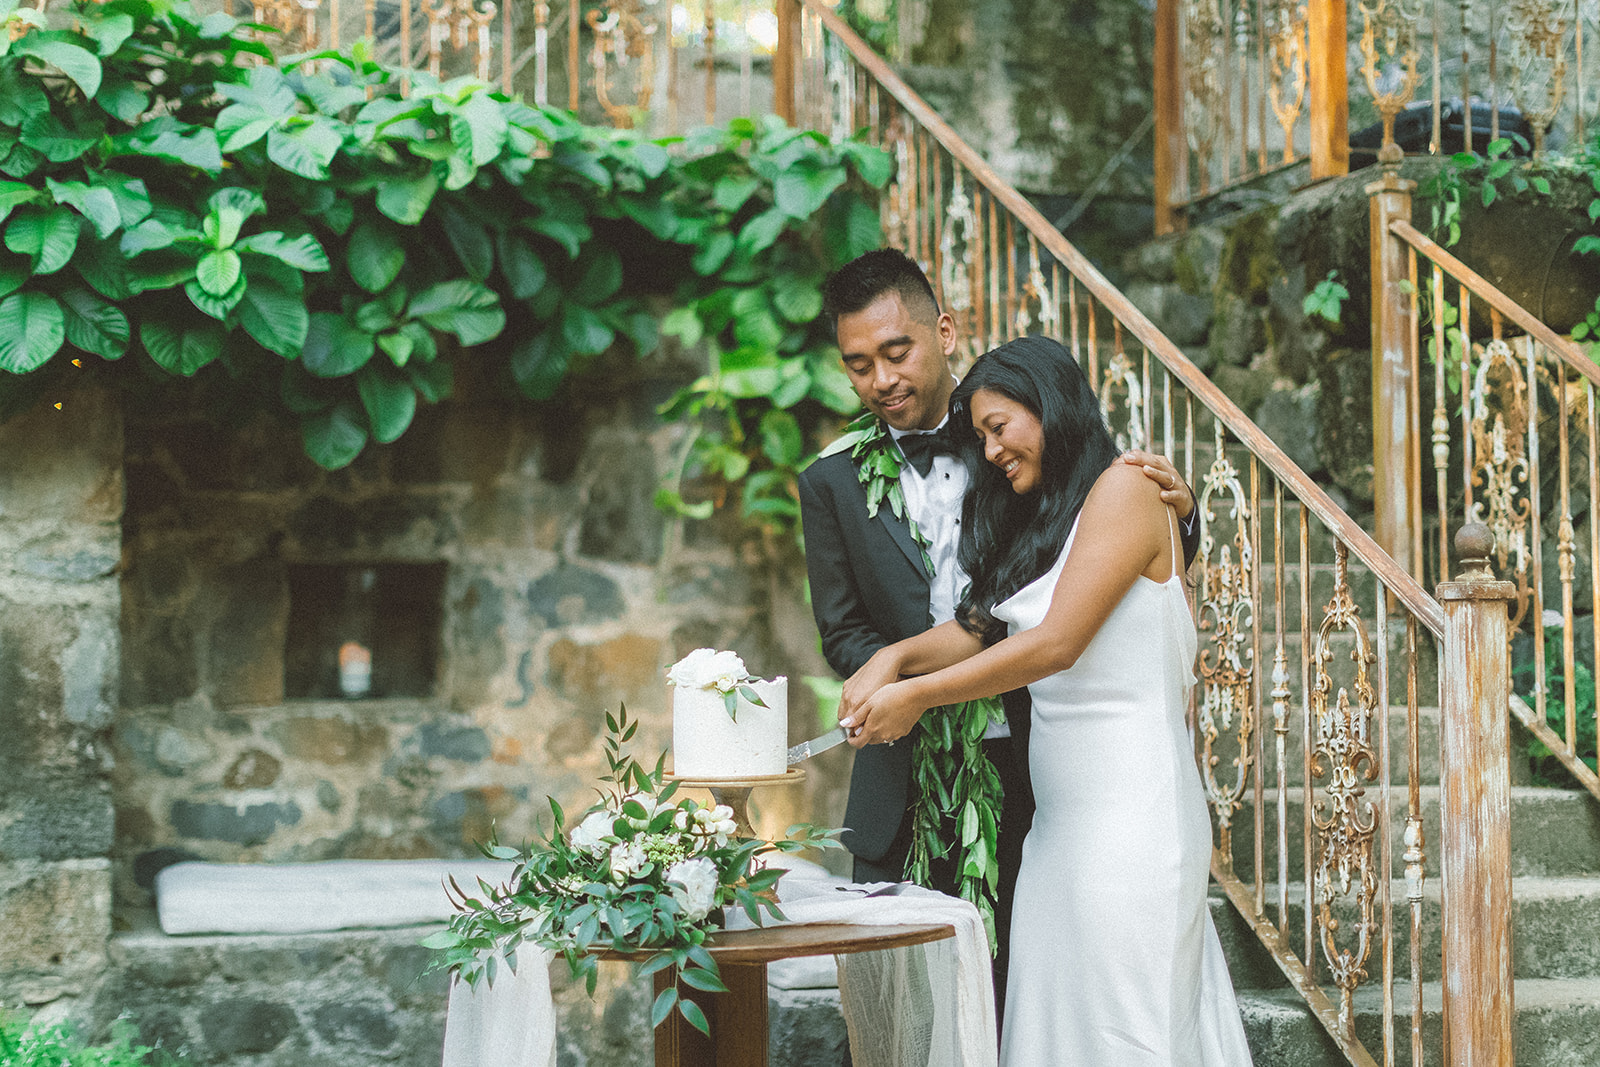 Haiku Mill Luxe Maui Wedding20190625_0313.jpg